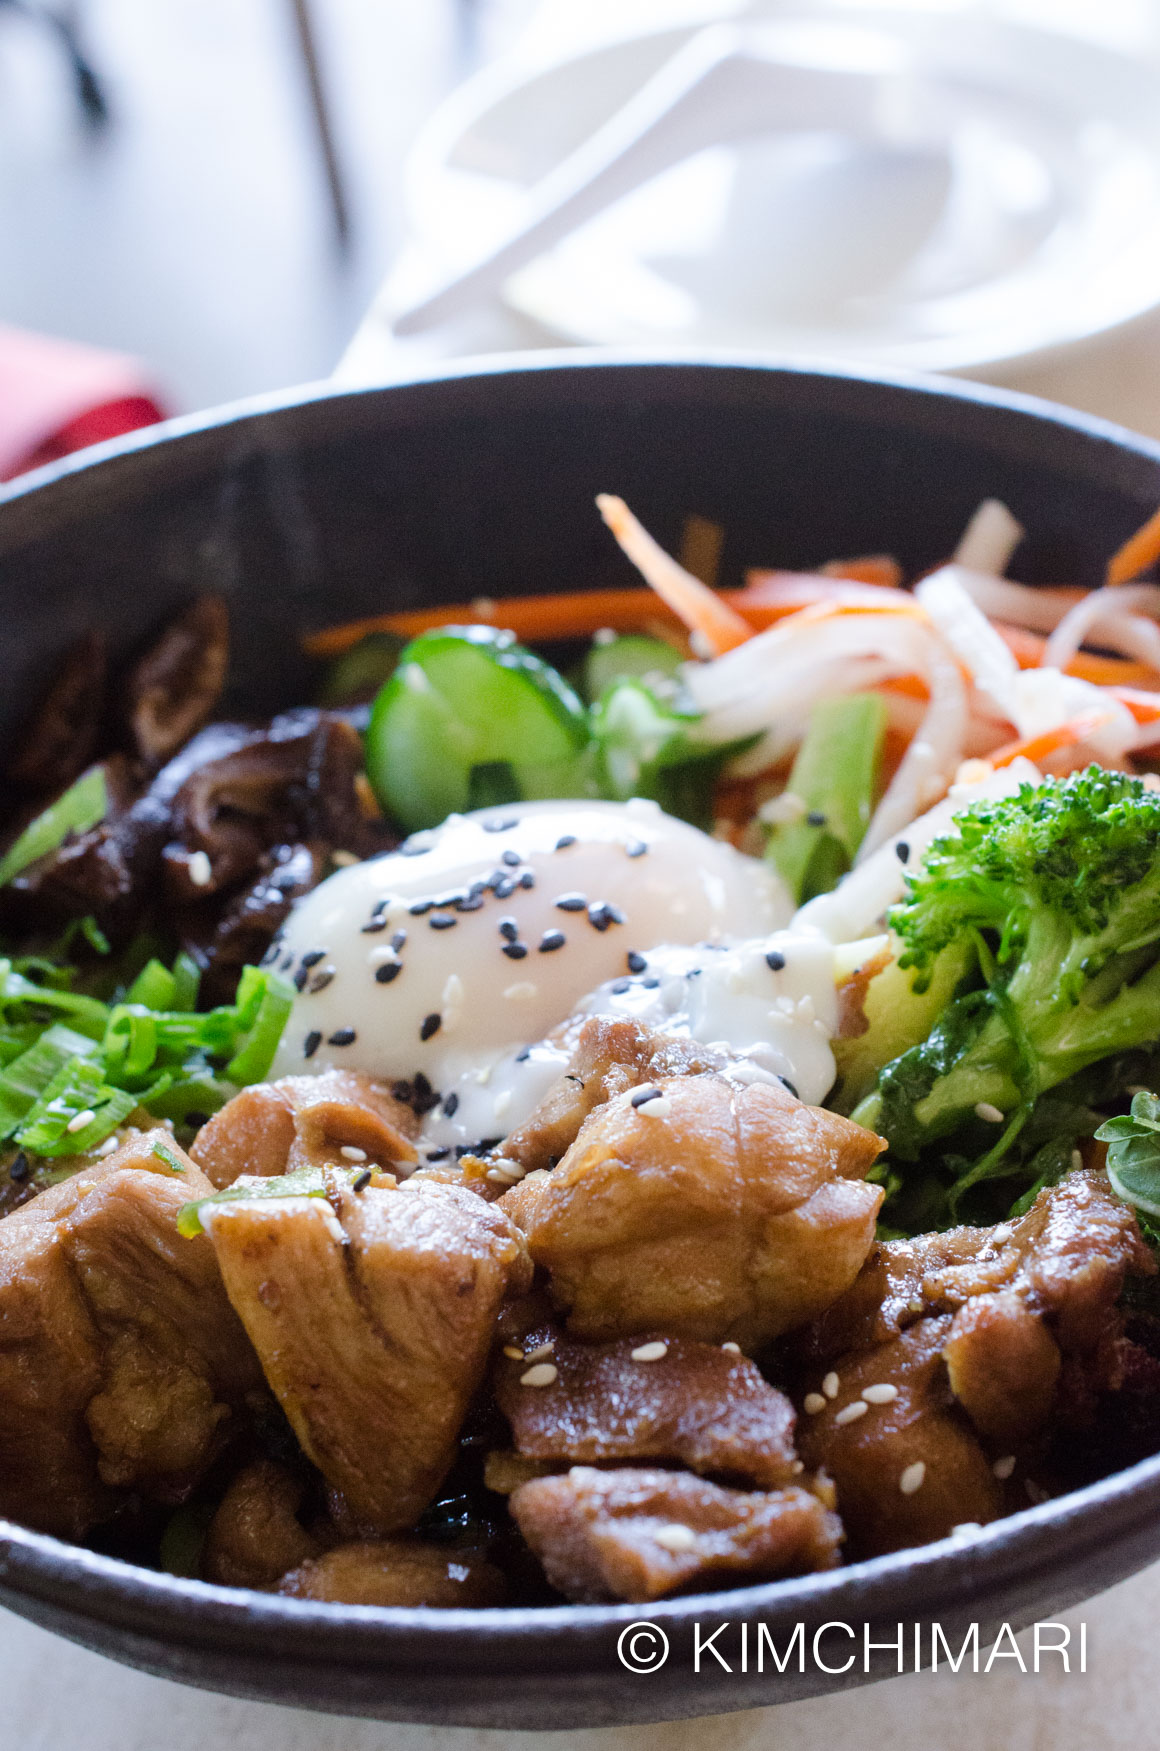 Teriyaki Chicken and Poached Egg with Veggies